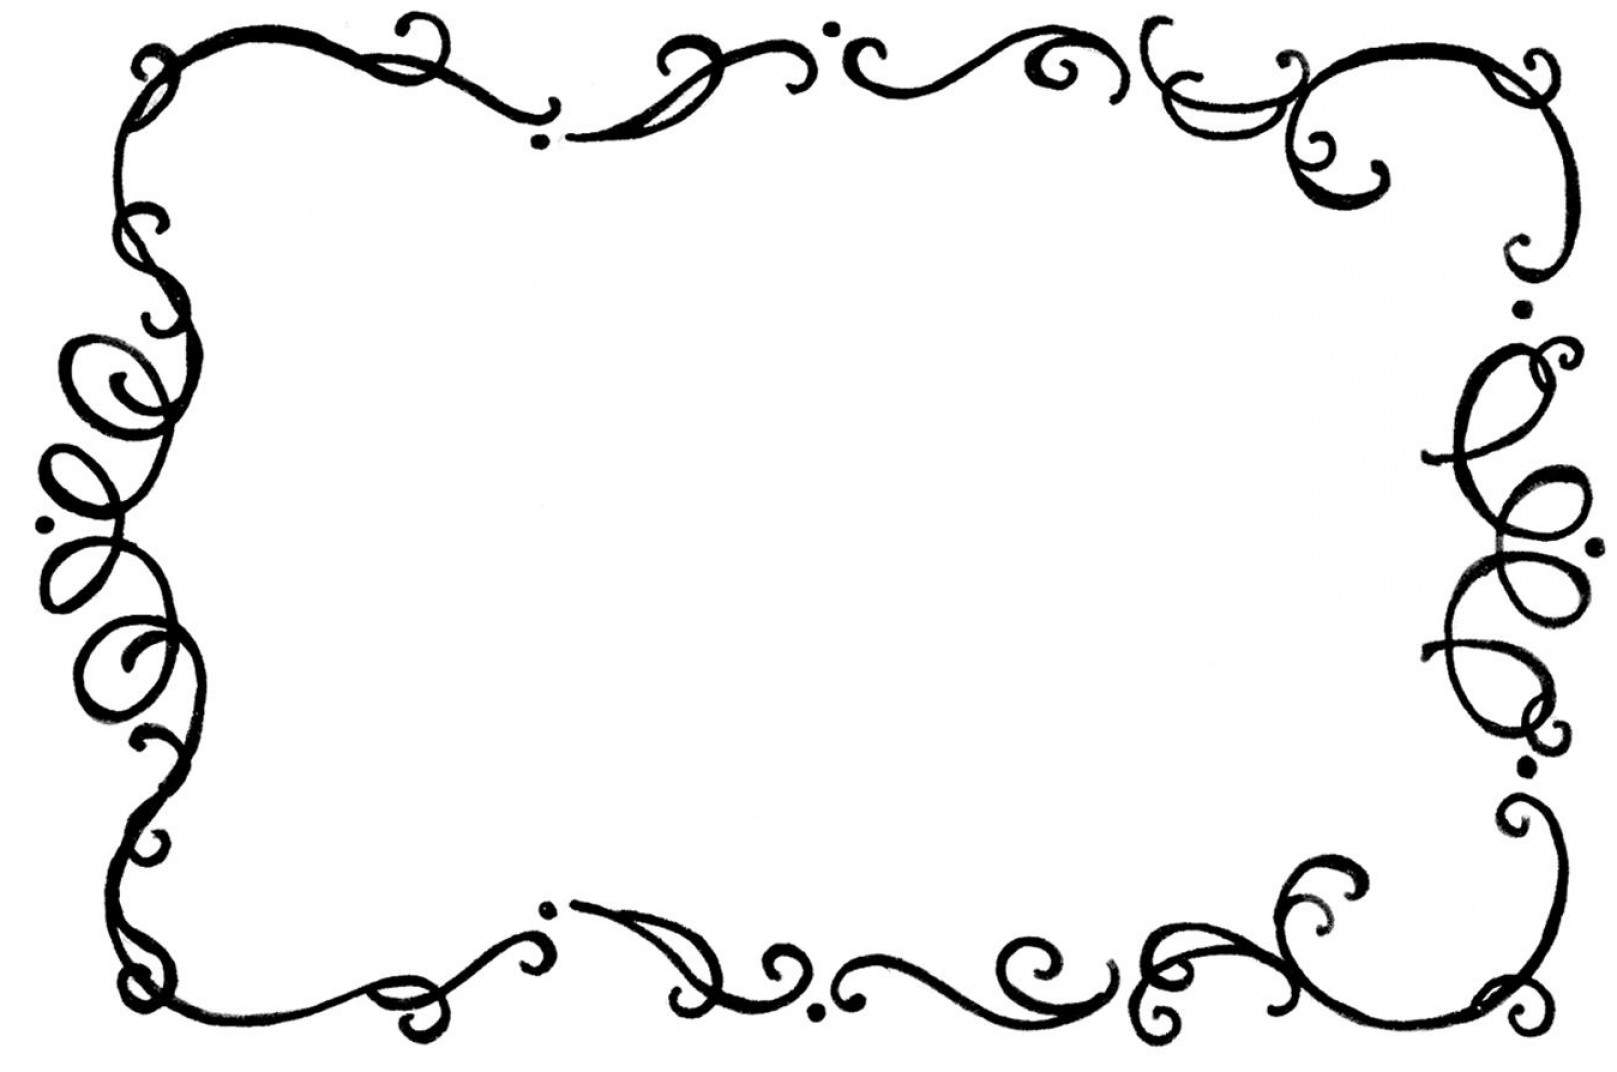 Free Flourish Frame Vector Fancy Border Clipart A